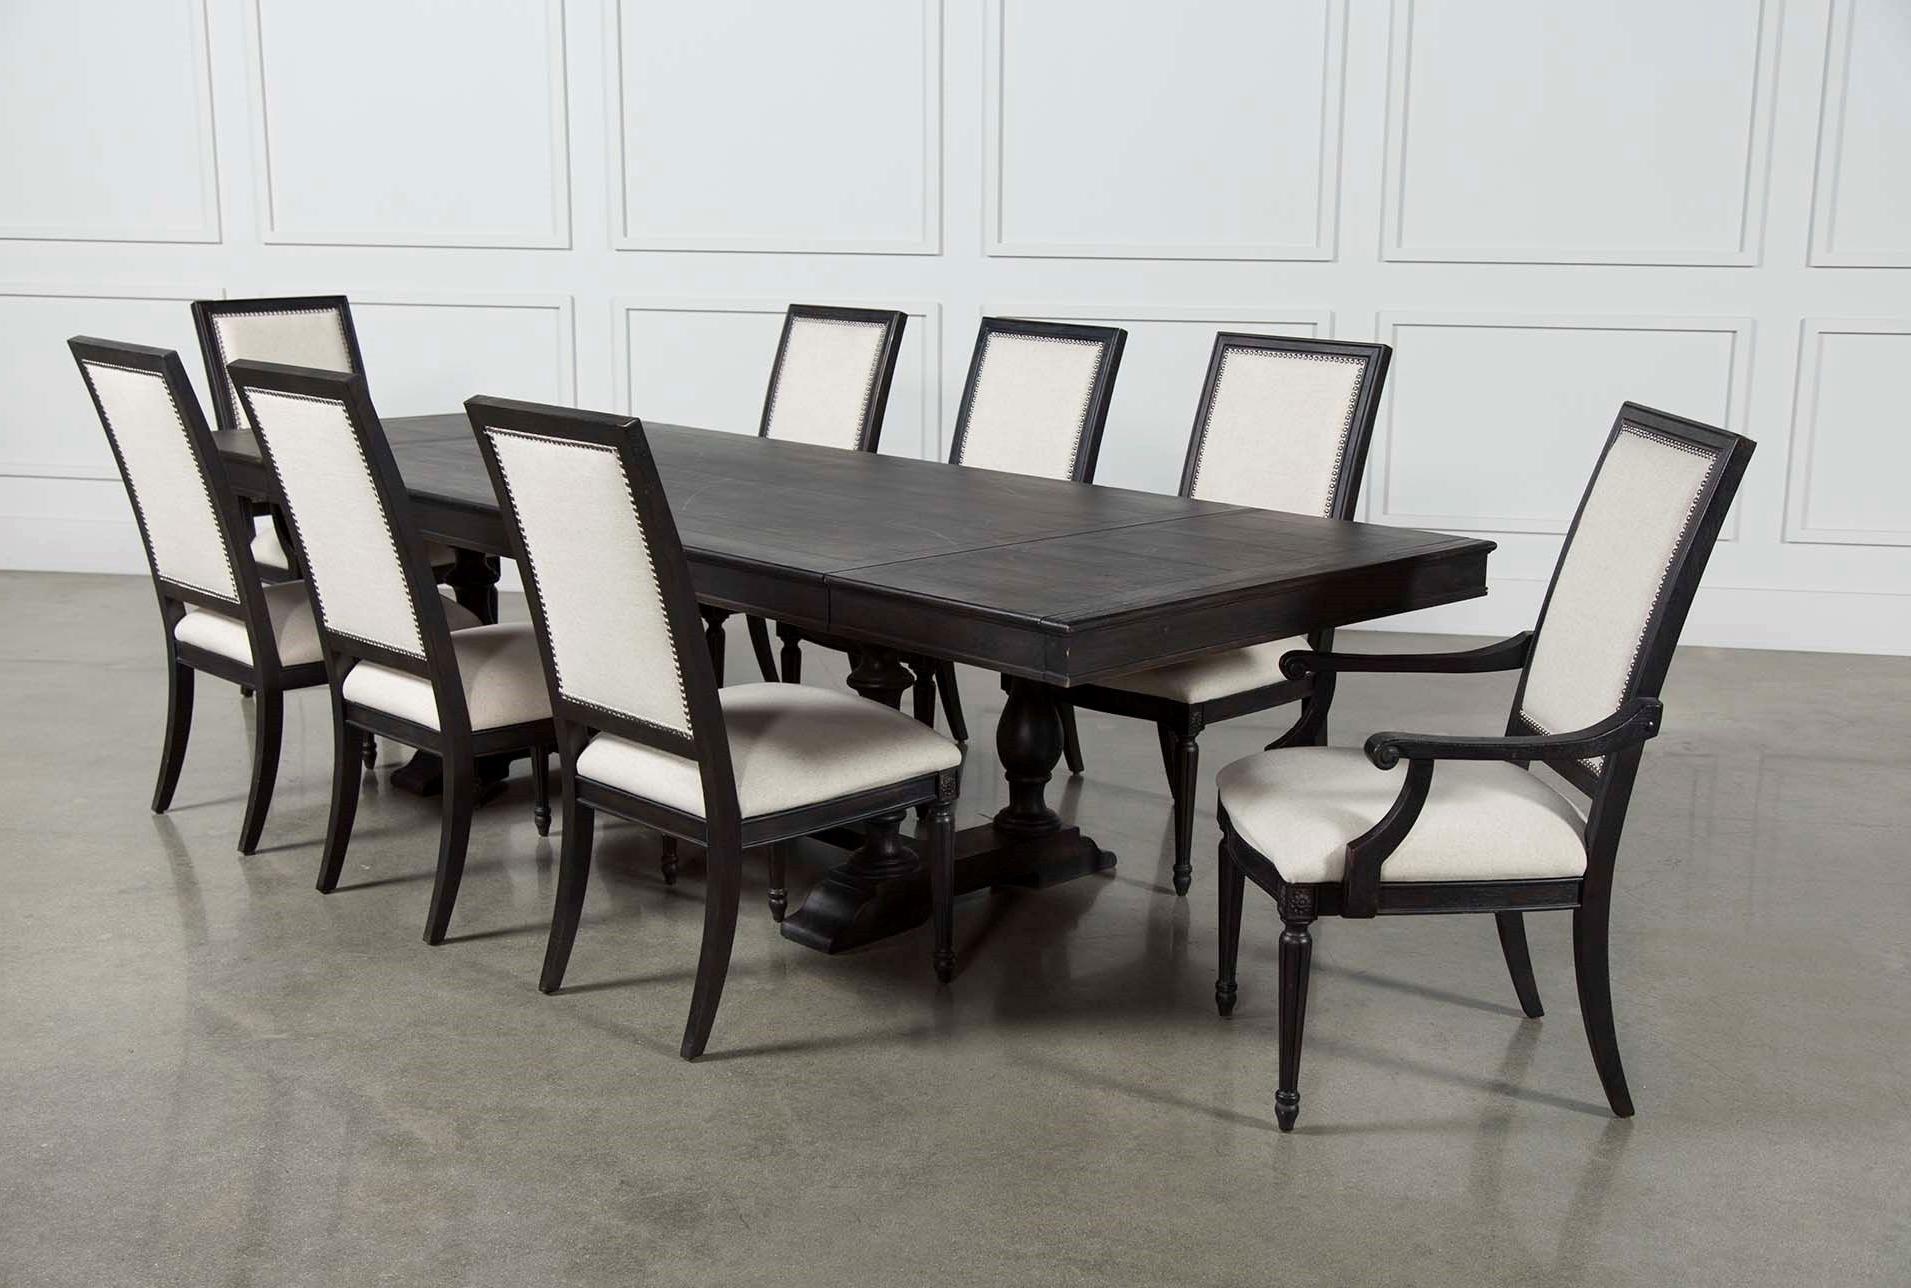 Extensions, Dining within Current Chapleau Ii 9 Piece Extension Dining Tables With Side Chairs